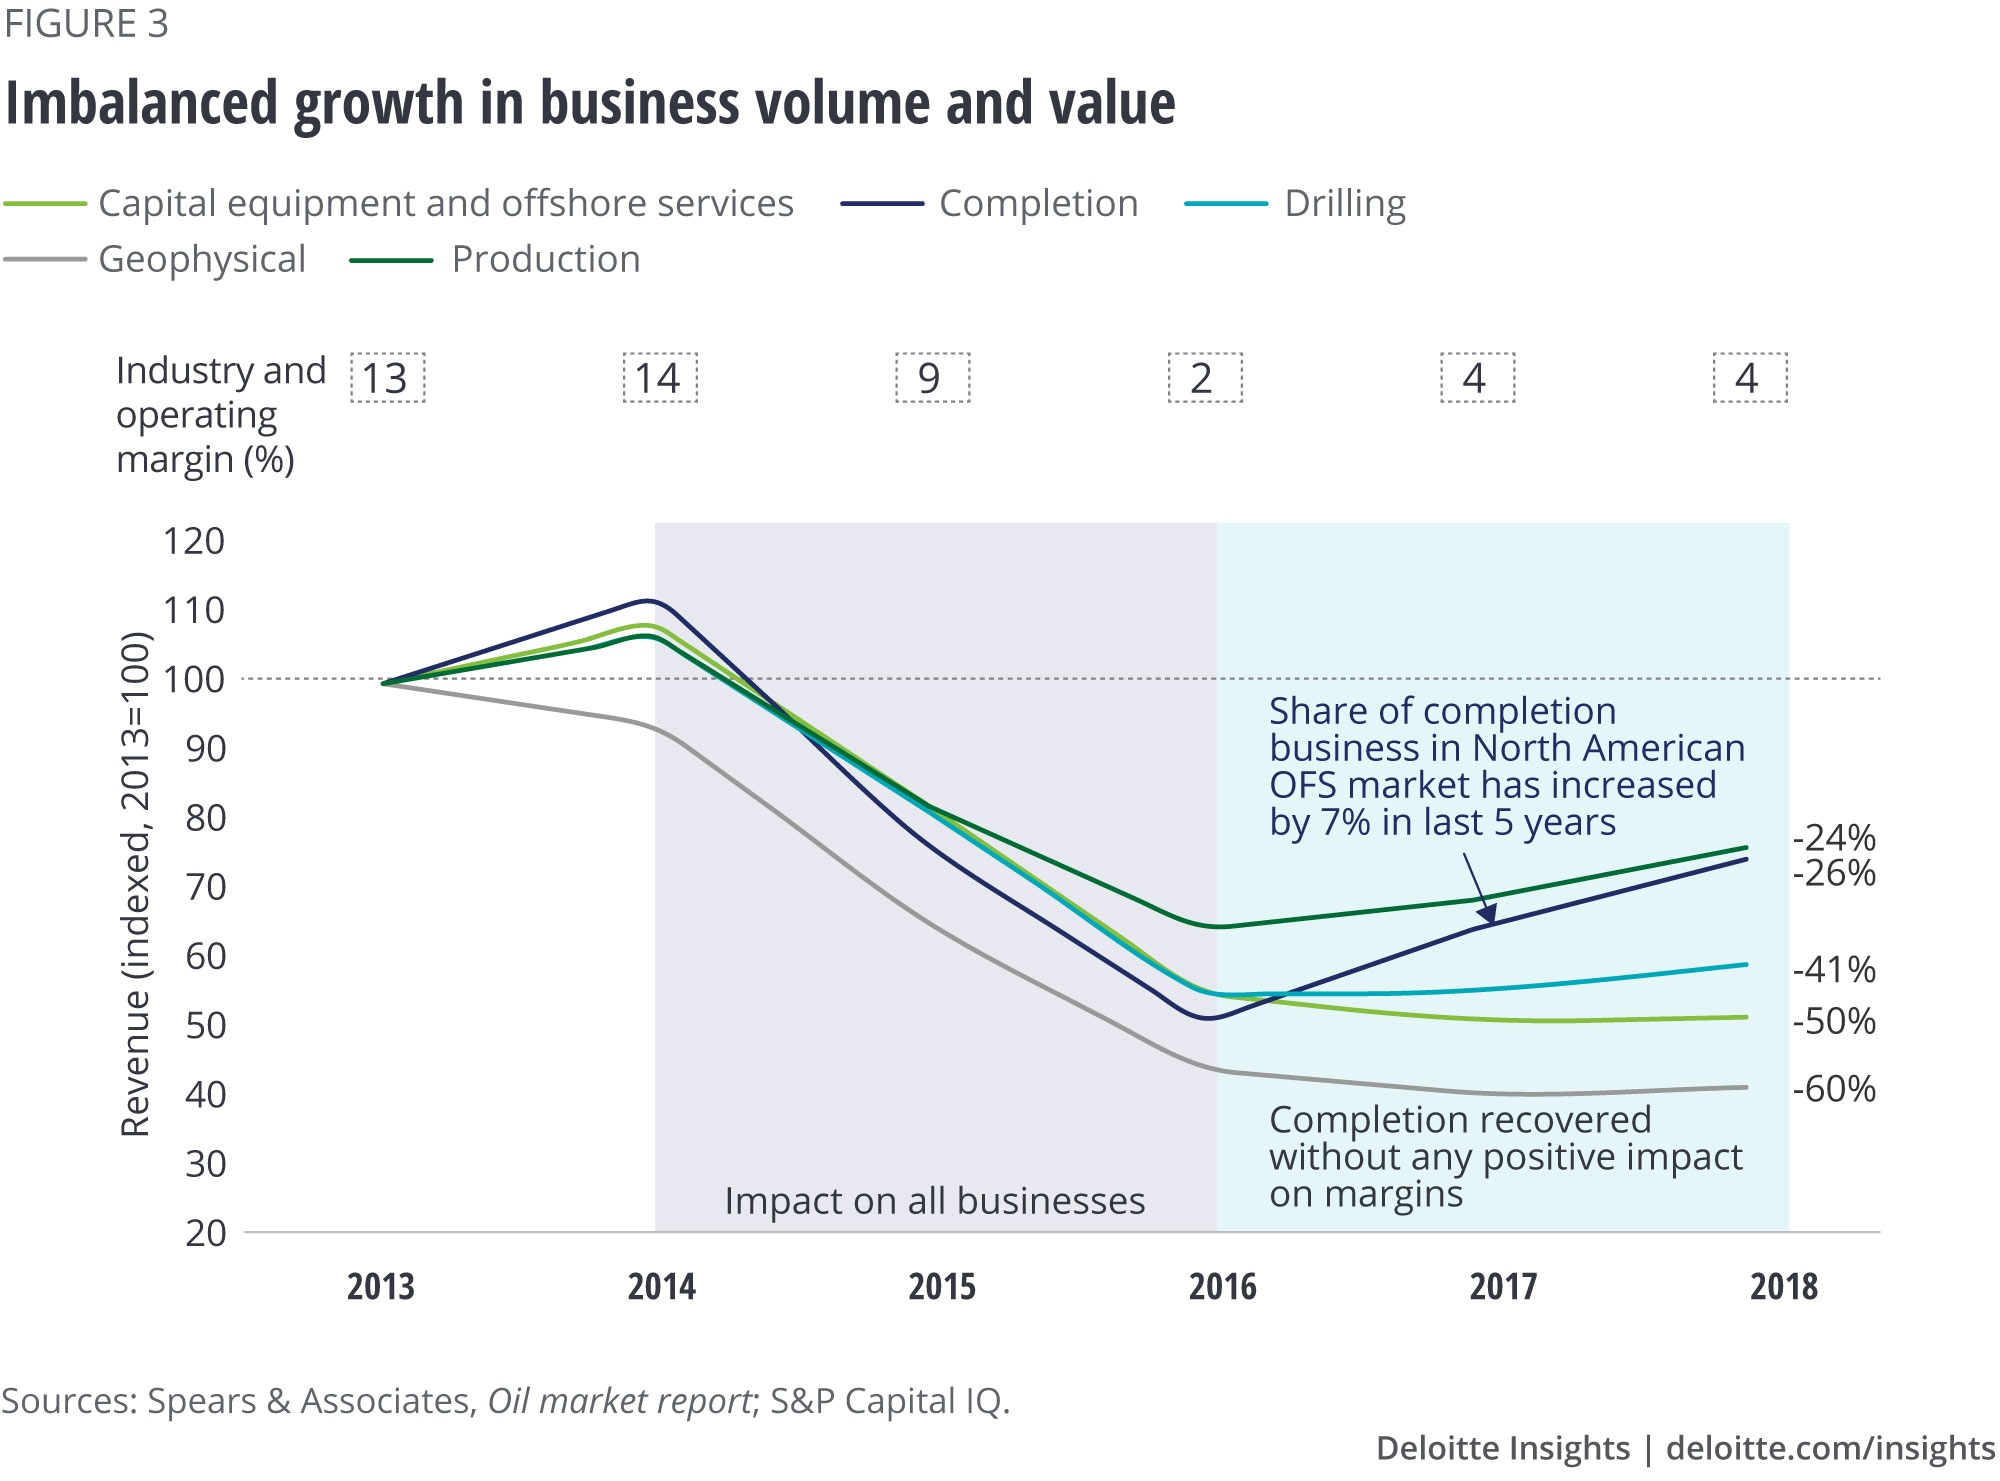 Imbalanced growth in business volume and value